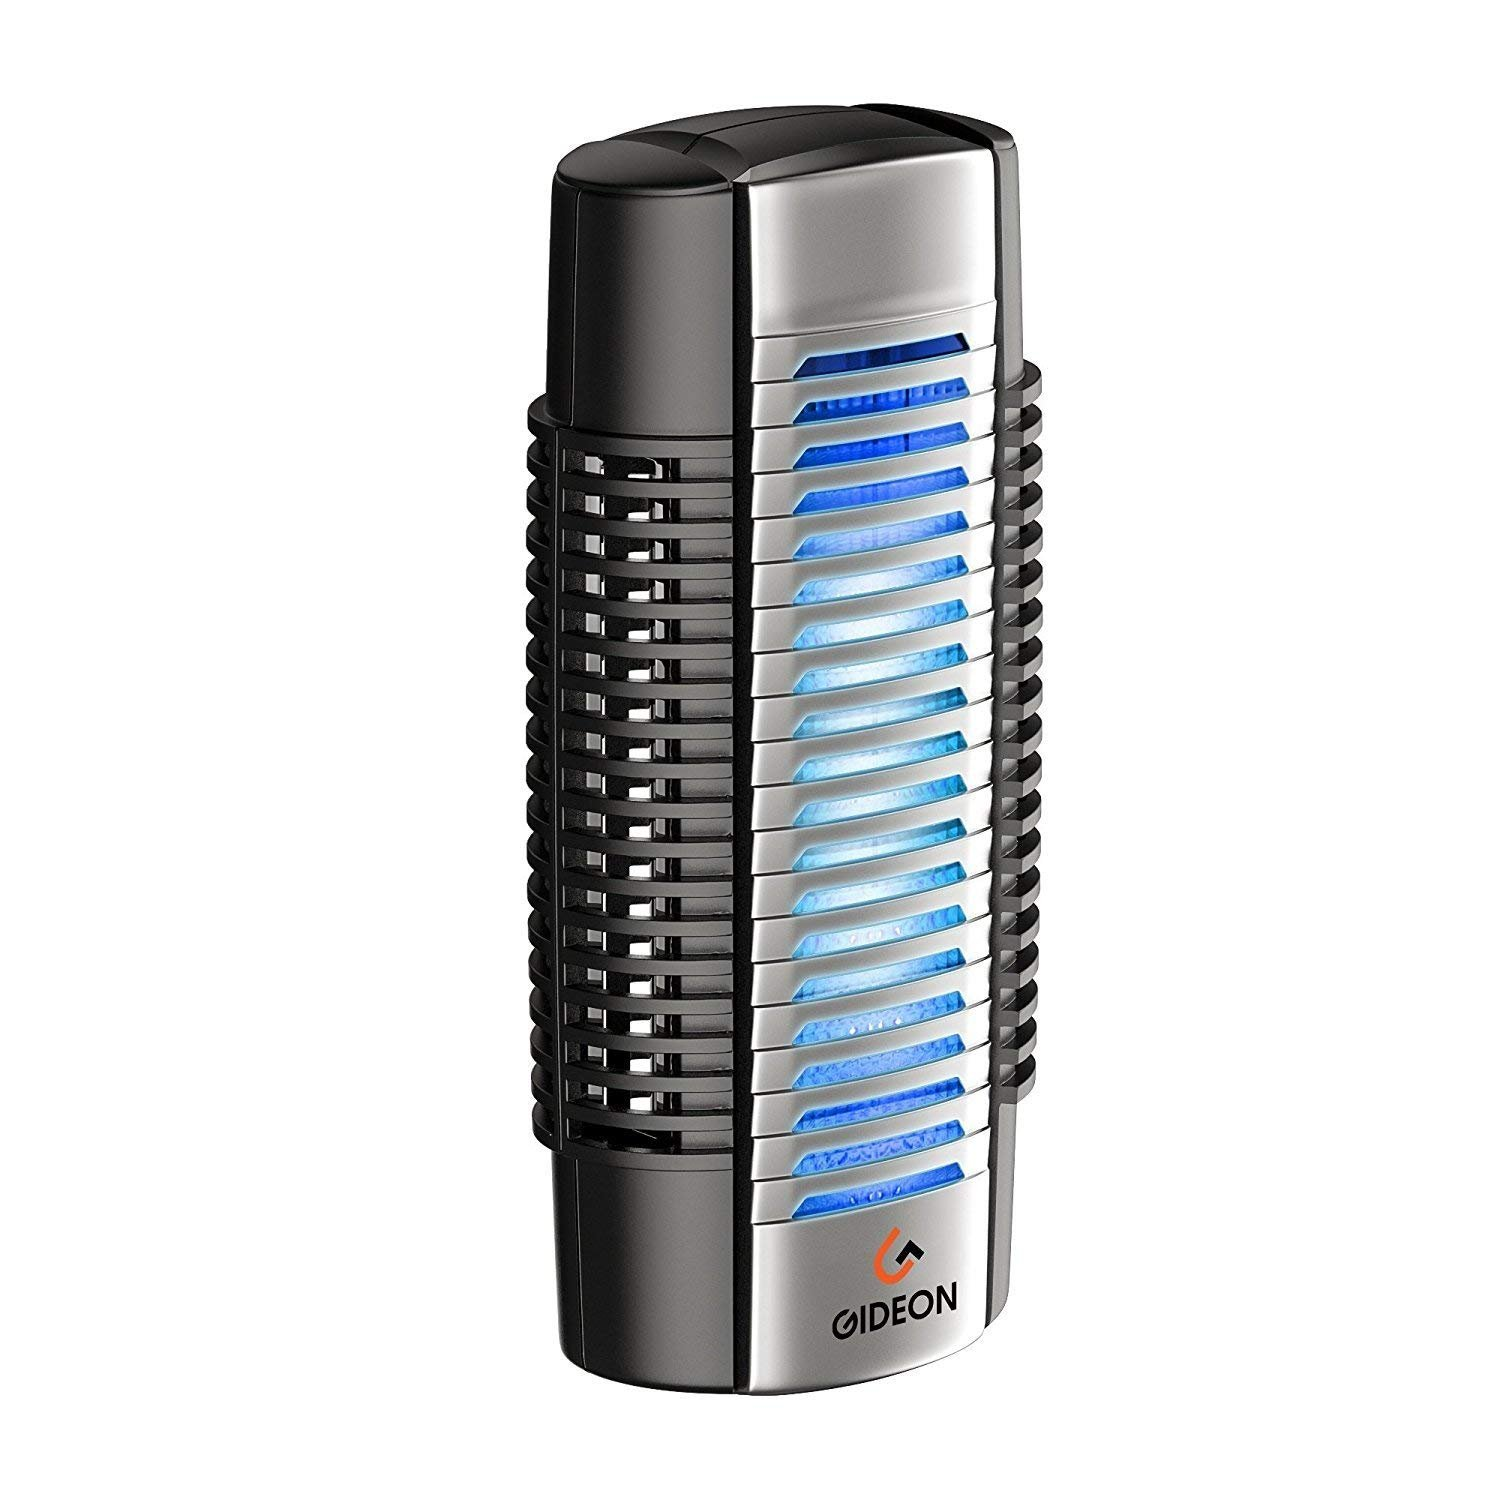 Gideon Mini Plug-in Air Ionizer Air Purifier Portable UV Air Sanitizer Helps Eliminate Germs, Odors and Allergens Such as Dust Mites and Mold Spores